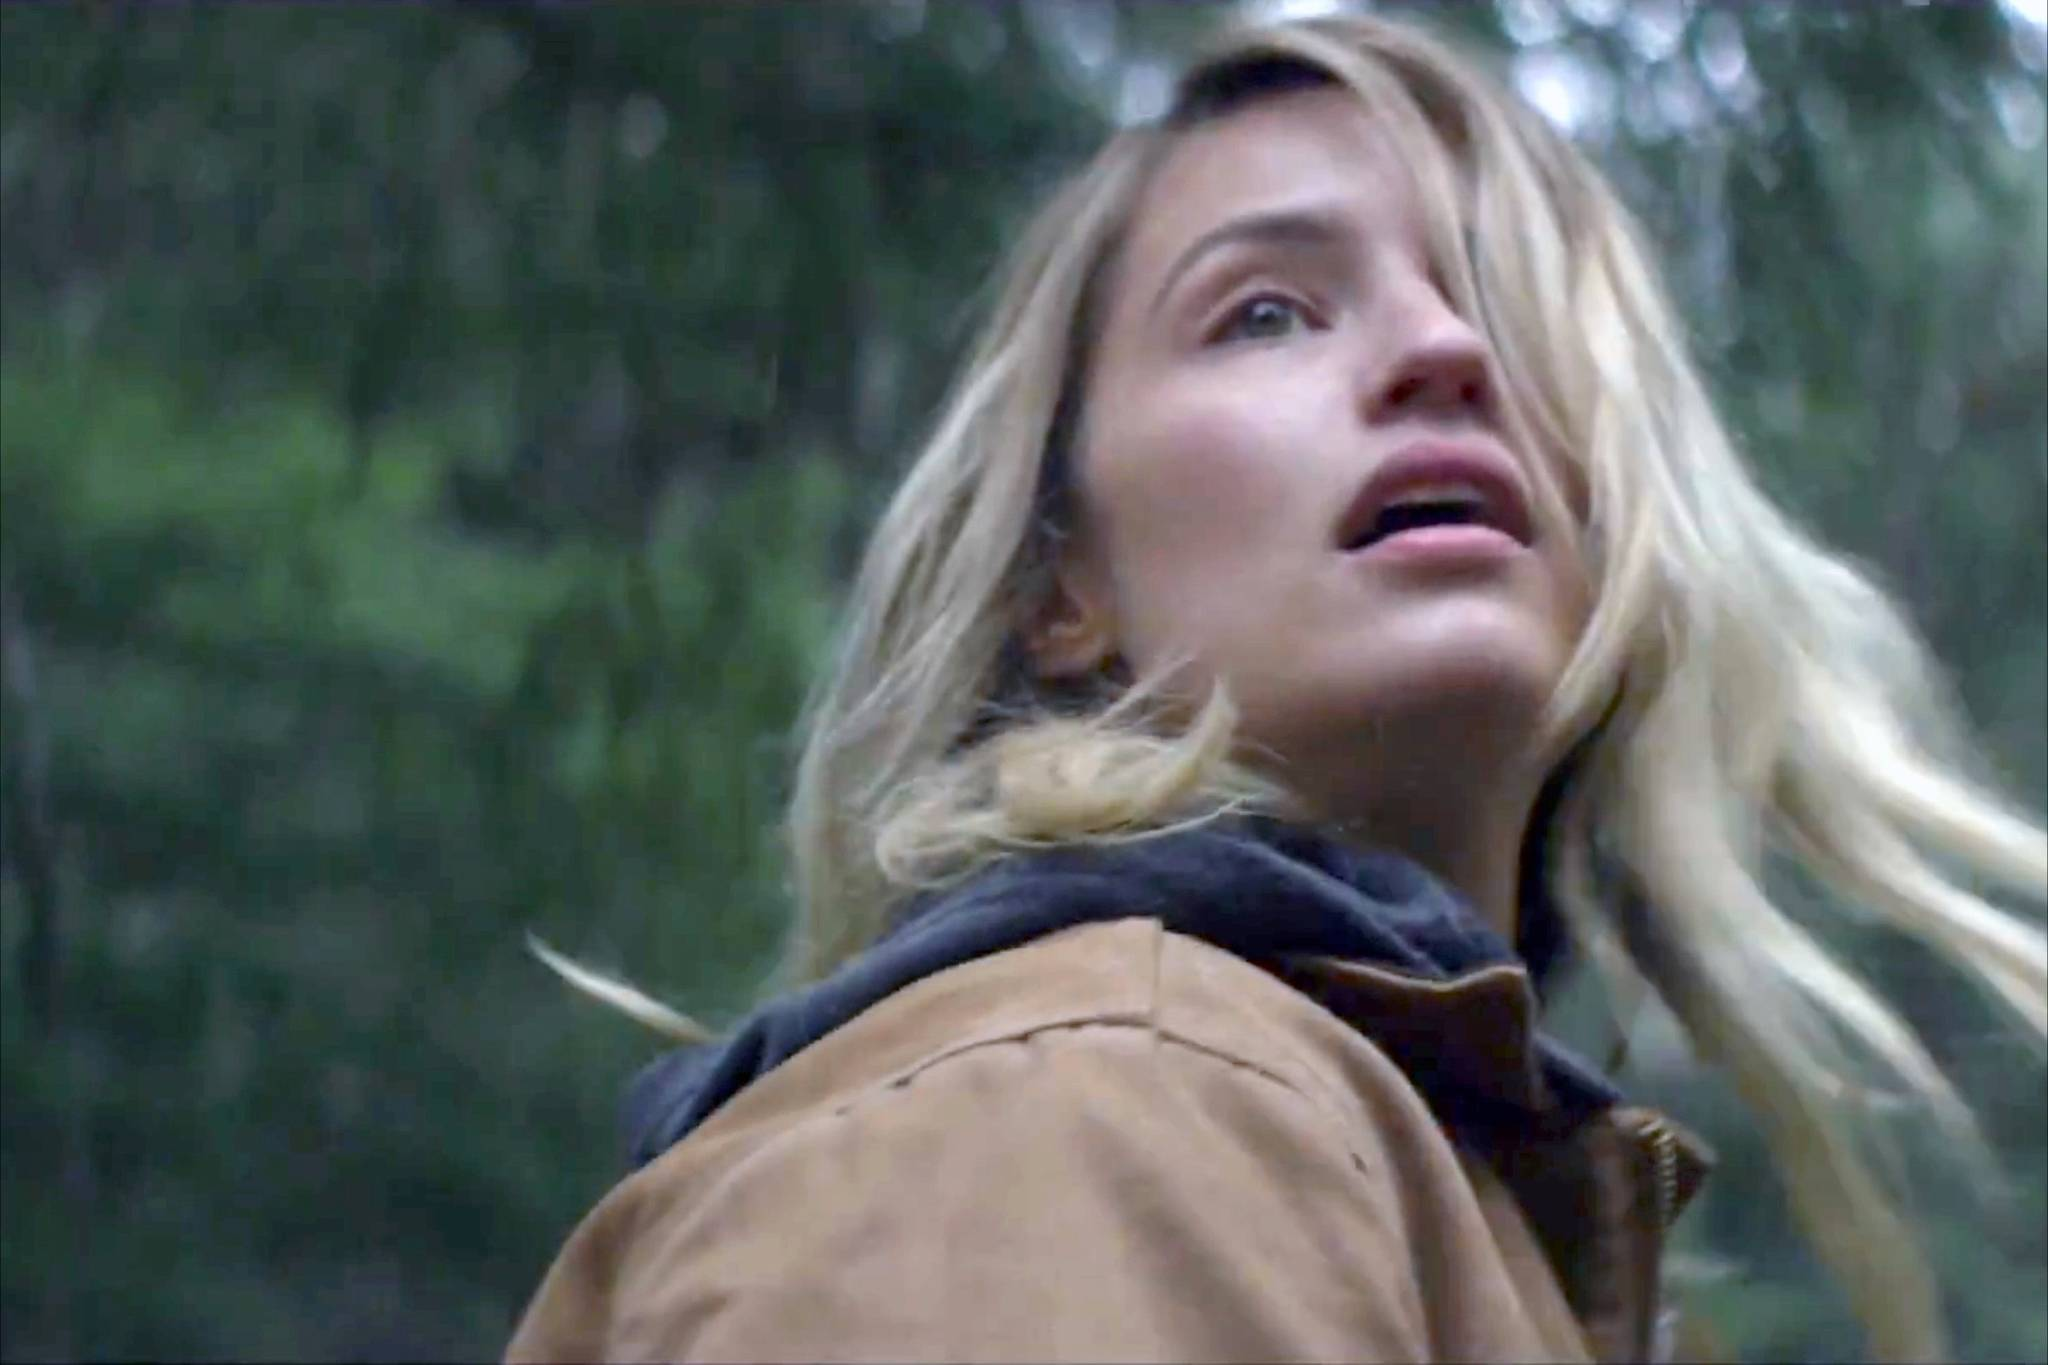 Dianna Agron, who stars in Hollow in the Land, appears in the trailer for the movie.